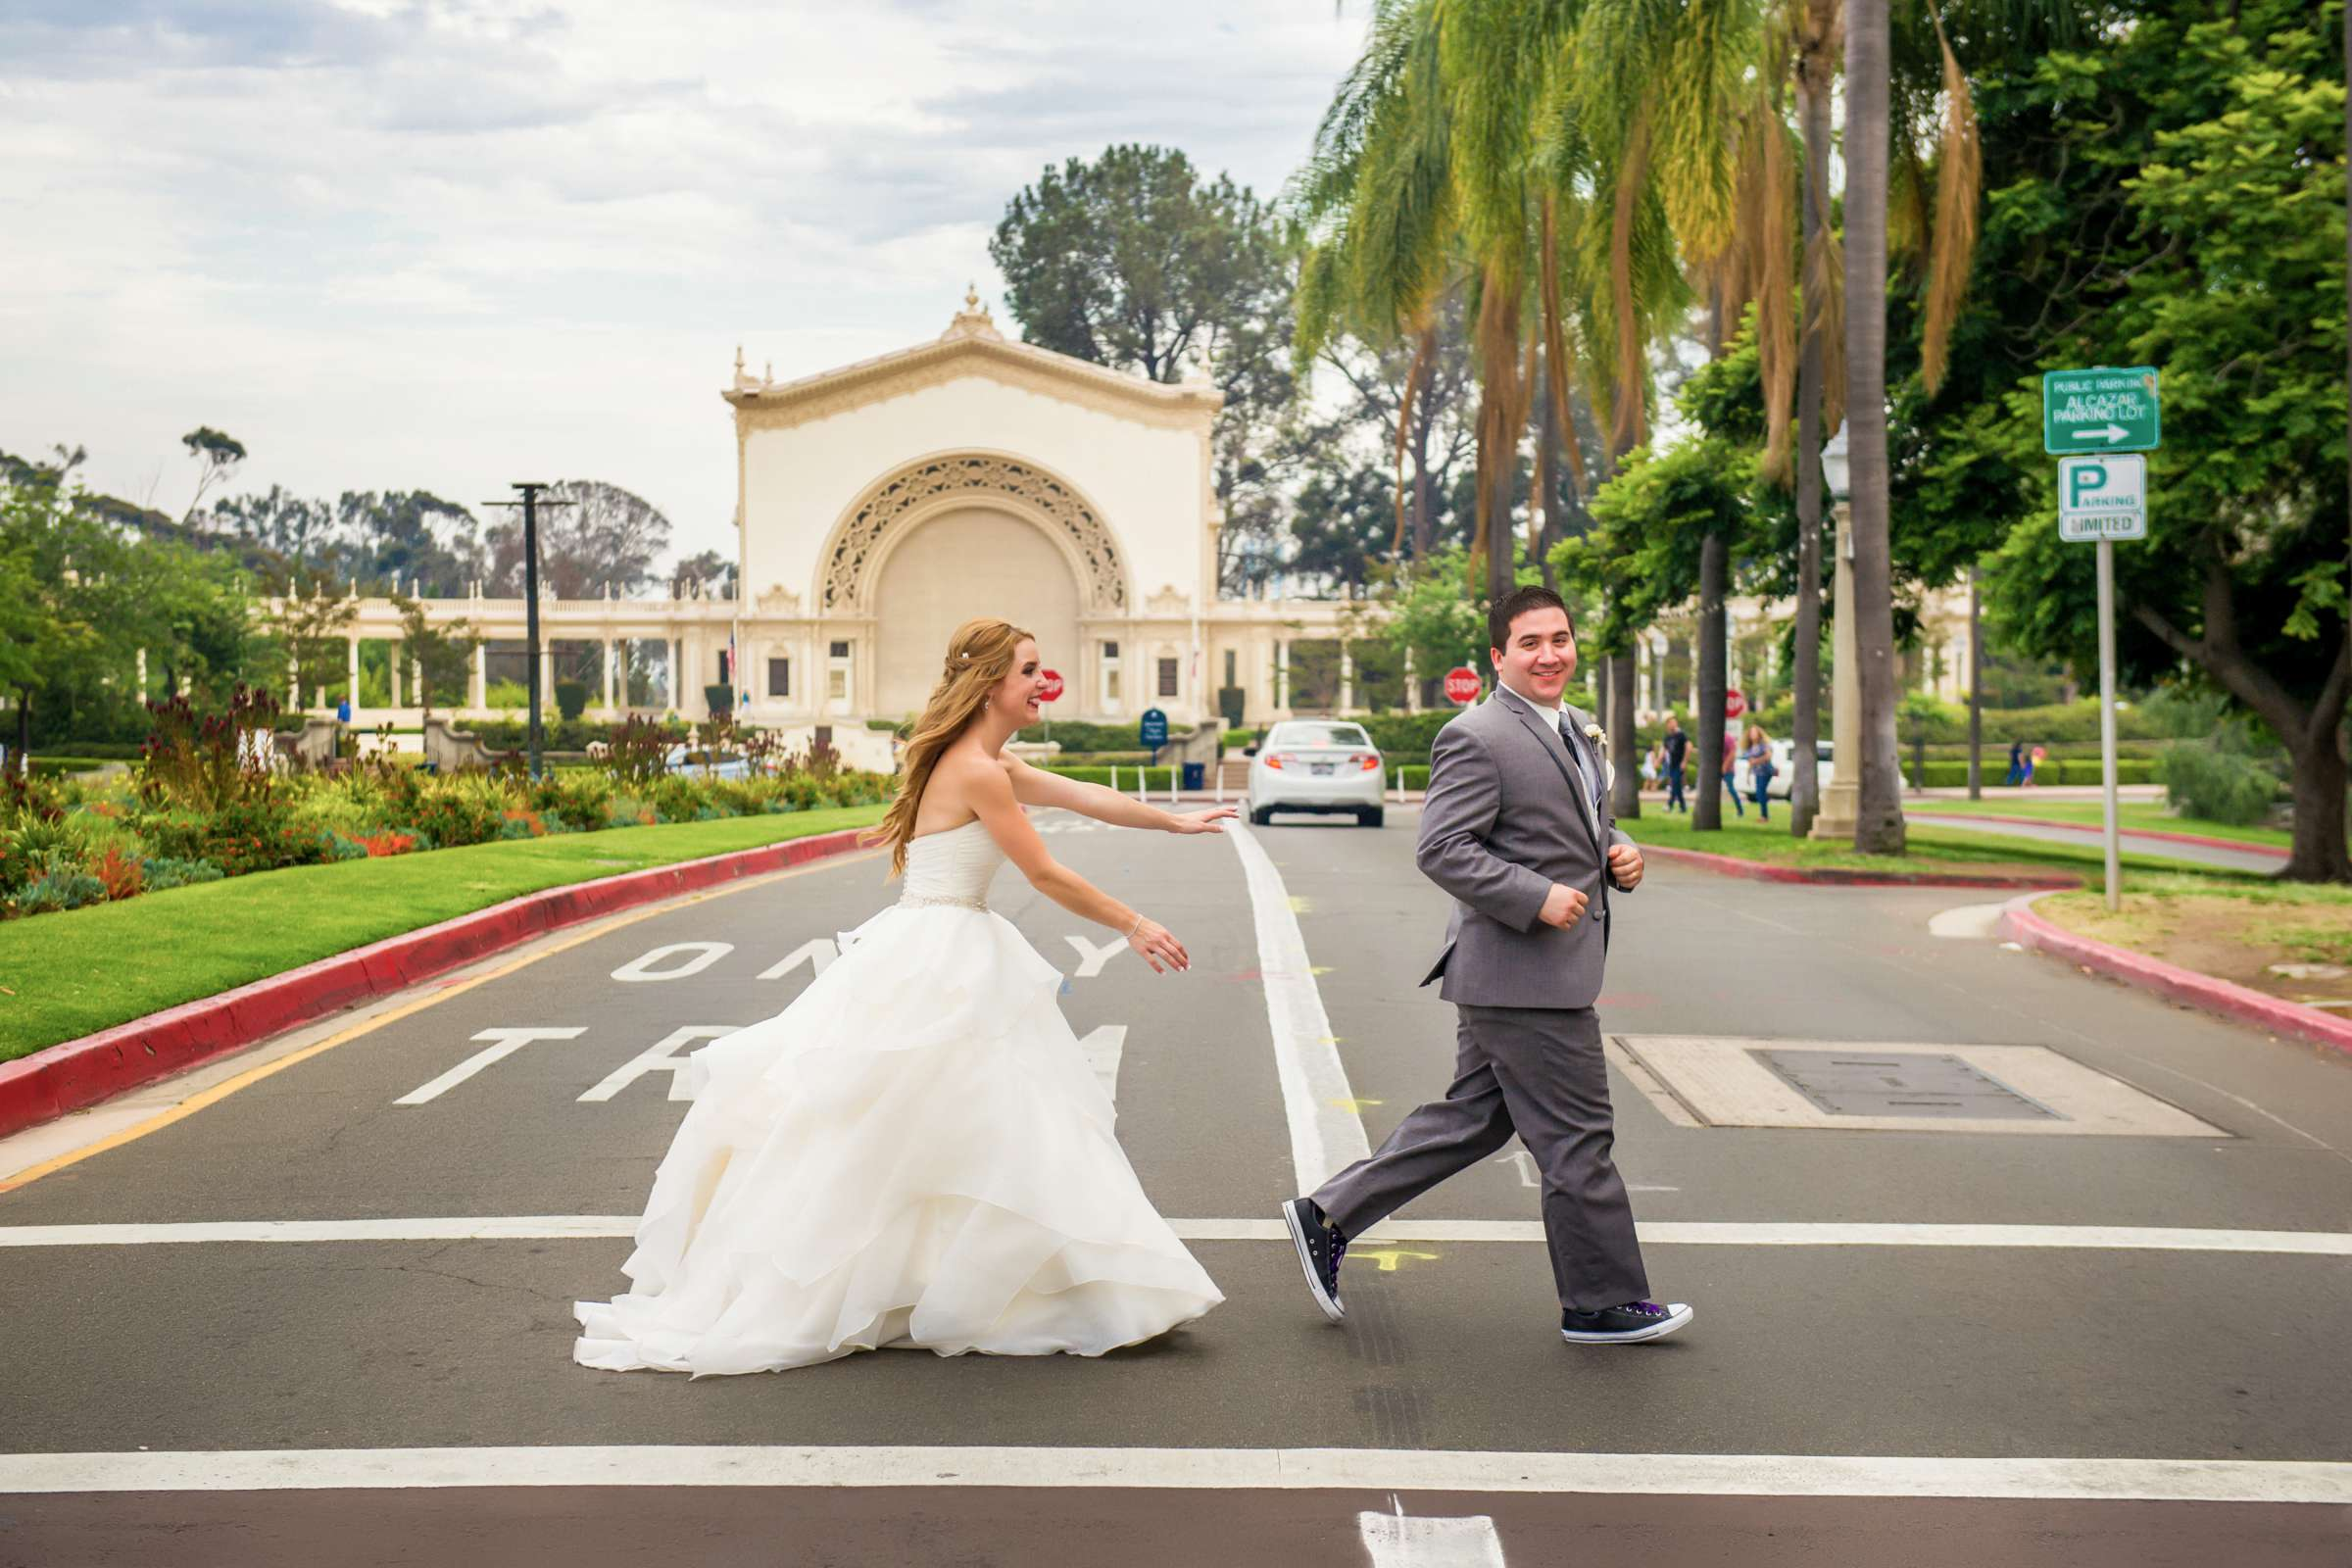 The Prado Wedding coordinated by Victoria Weddings & Events, Melissa and Andrew Wedding Photo #3 by True Photography